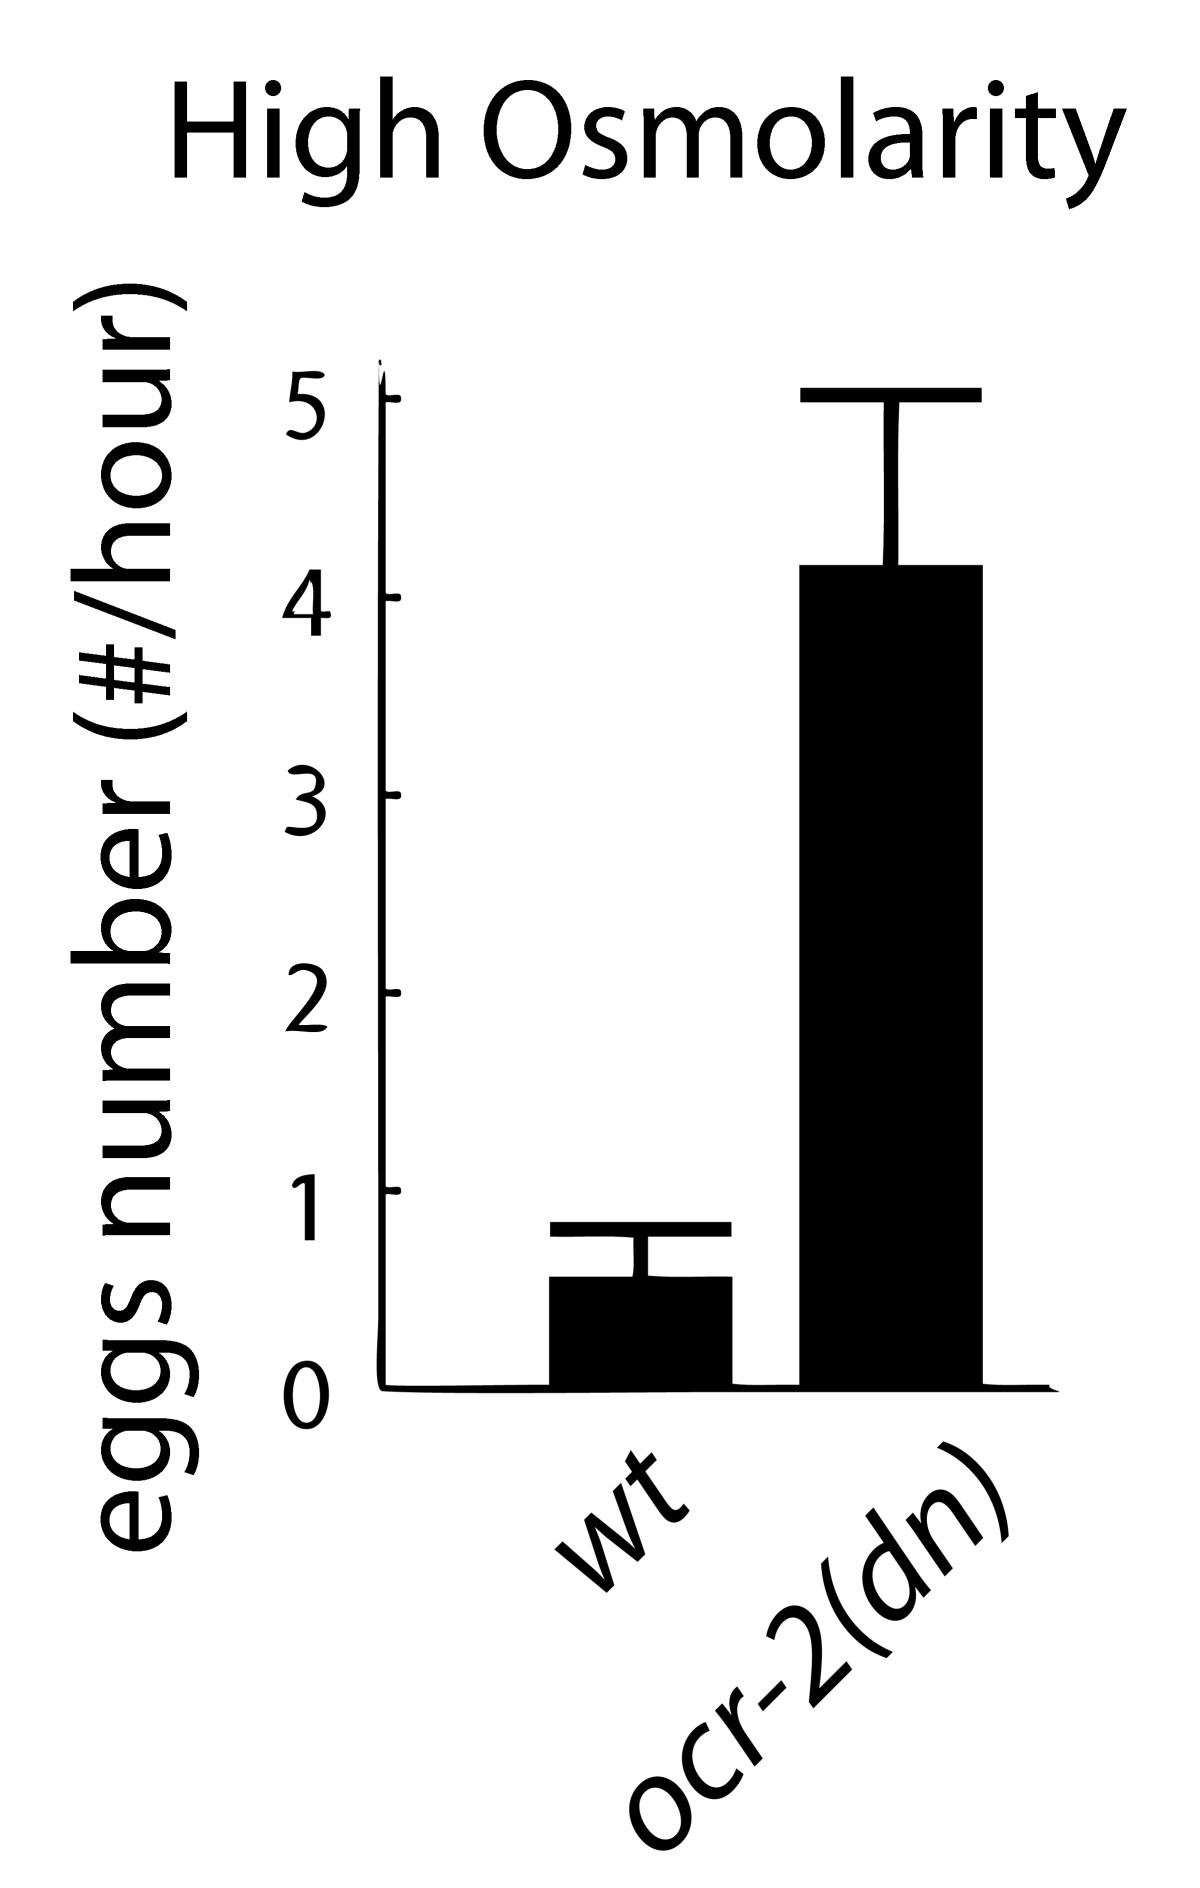 http://static-content.springer.com/image/art%3A10.1186%2F1752-0509-4-81/MediaObjects/12918_2009_Article_470_Fig5_HTML.jpg